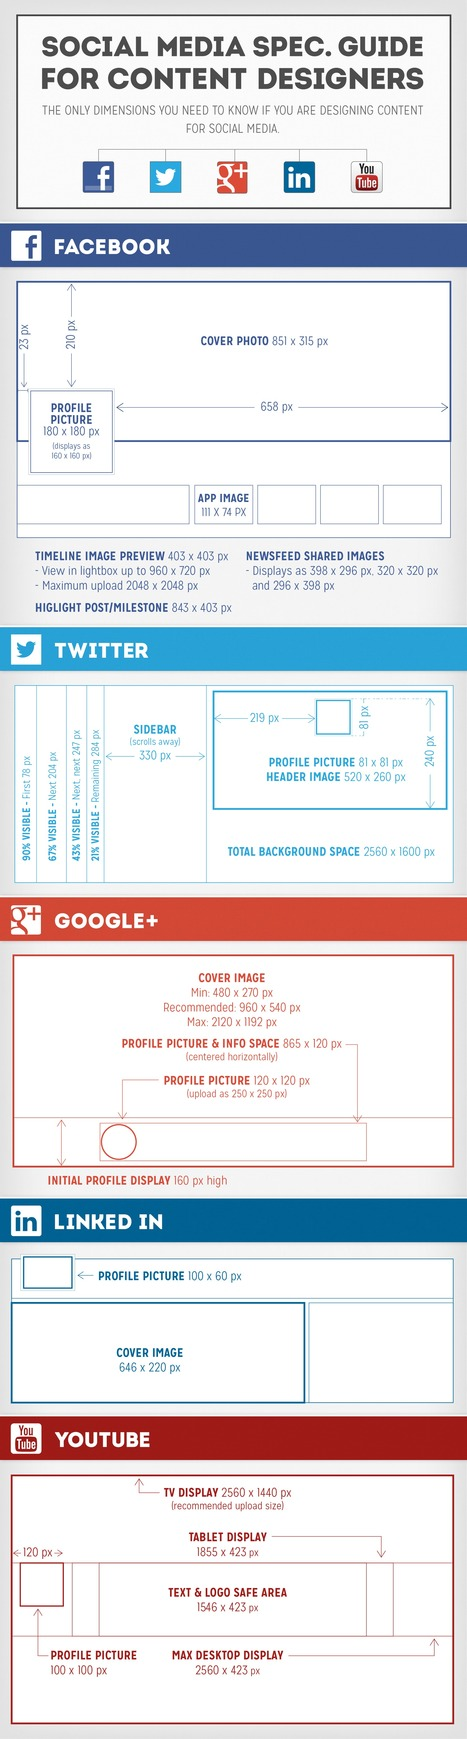 Social Media Image Size Guide [INFOGRAPHIC] | Internet Marketing | Scoop.it